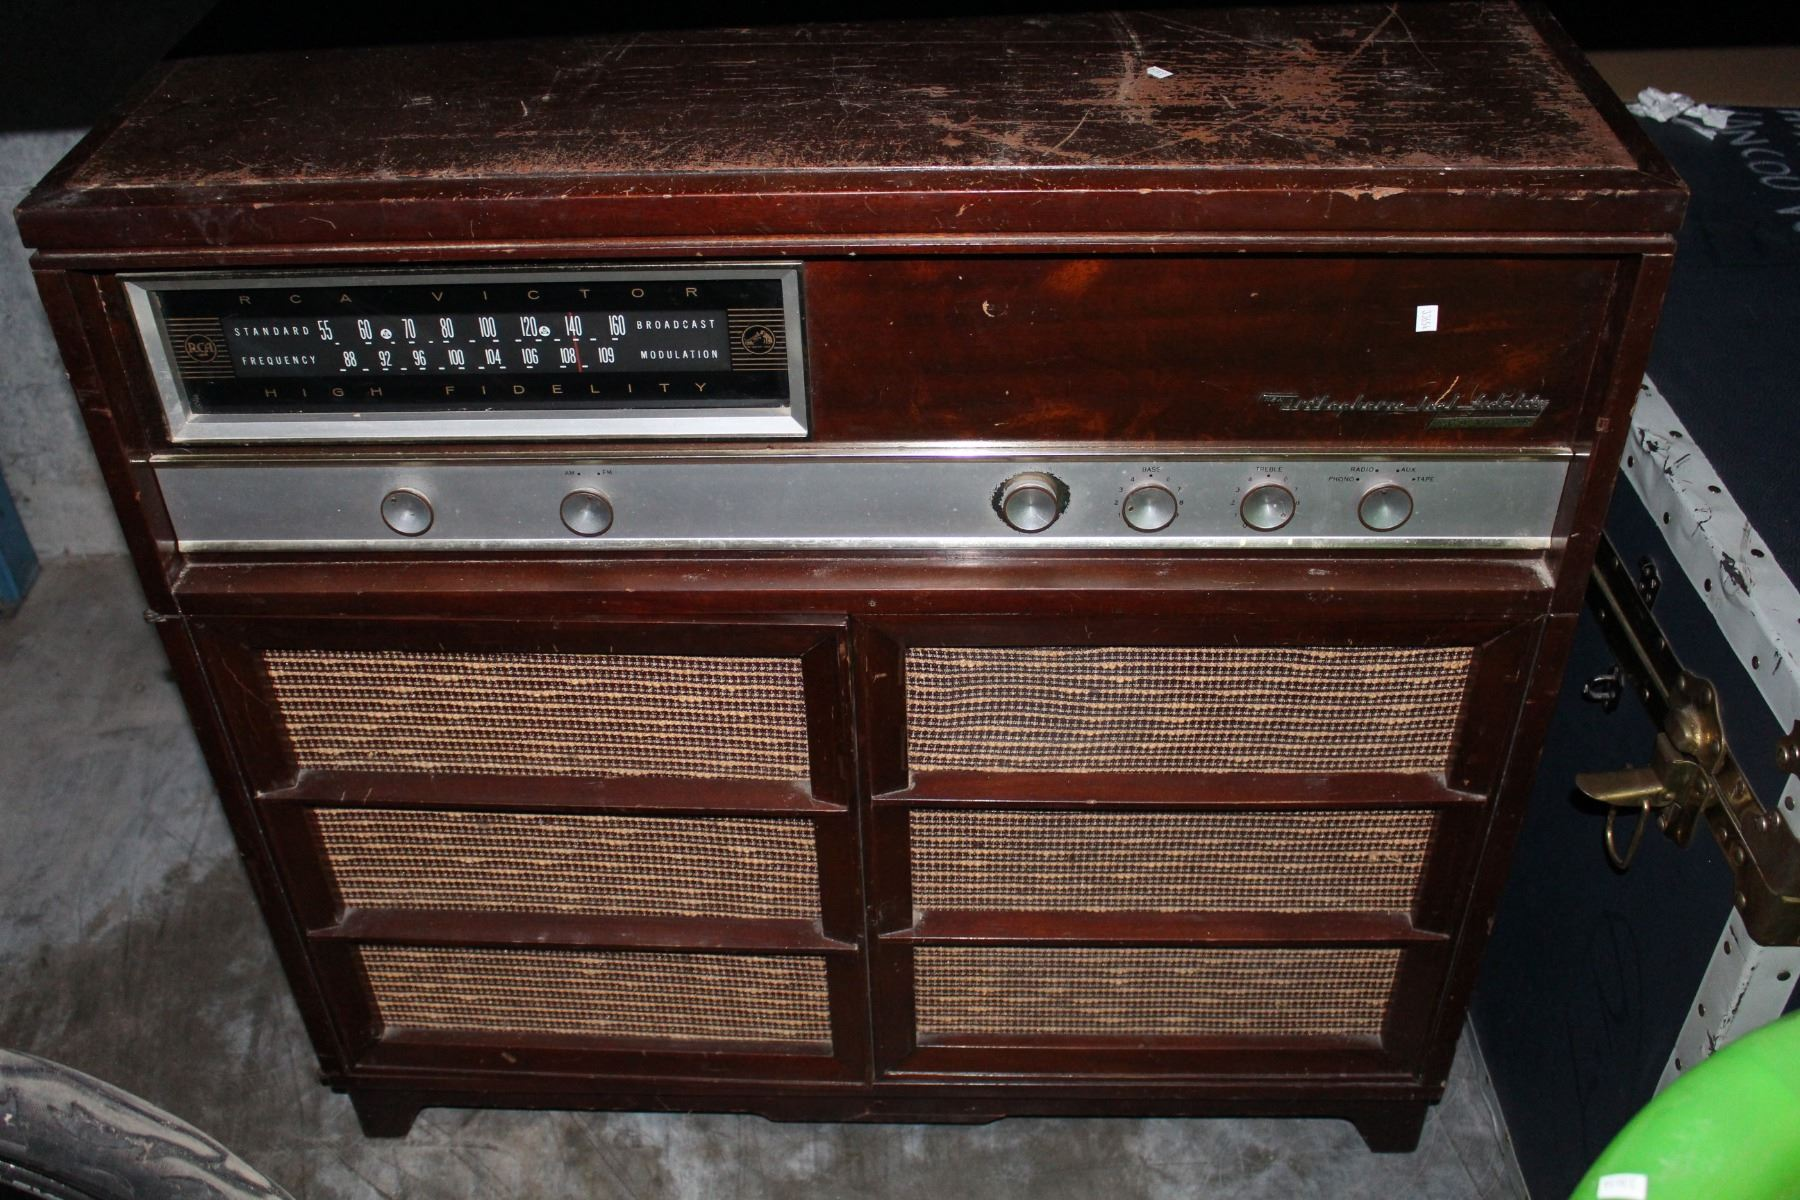 ... Image 2  VINTAGE RCA VICTOR RADIO AND OUTDOOR PATIO CHAIR & VINTAGE RCA VICTOR RADIO AND OUTDOOR PATIO CHAIR